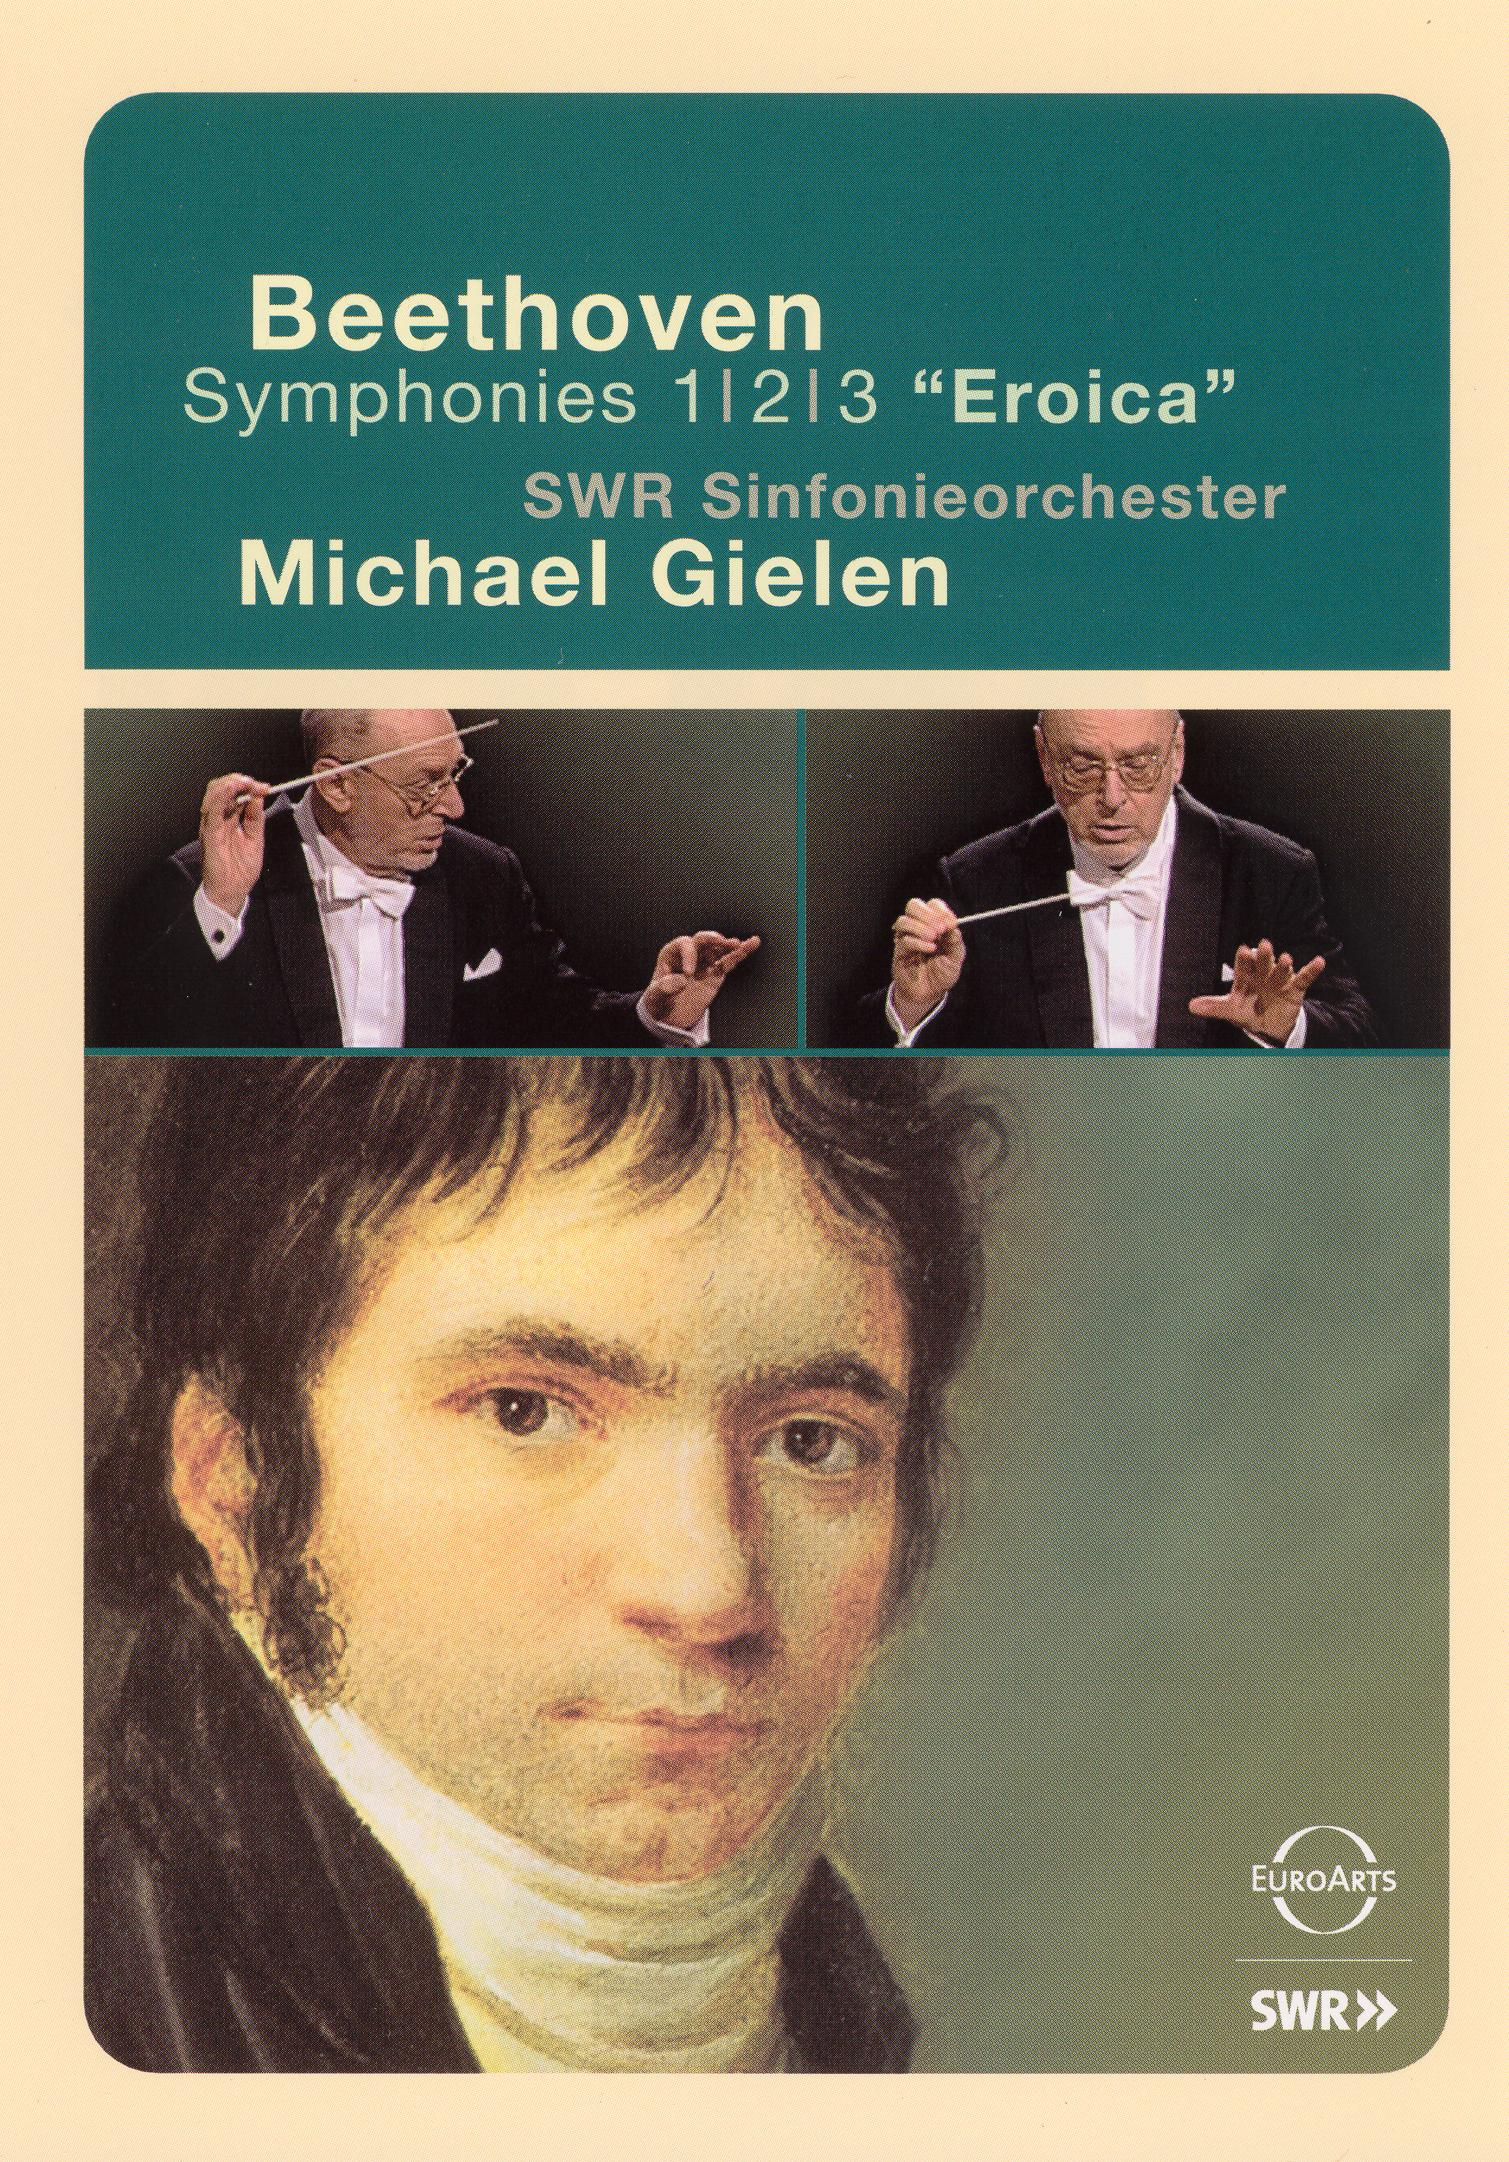 Michael Gielen/SWR Sinfonieorchester: Beethoven Symphonies Nos. 1/2/3